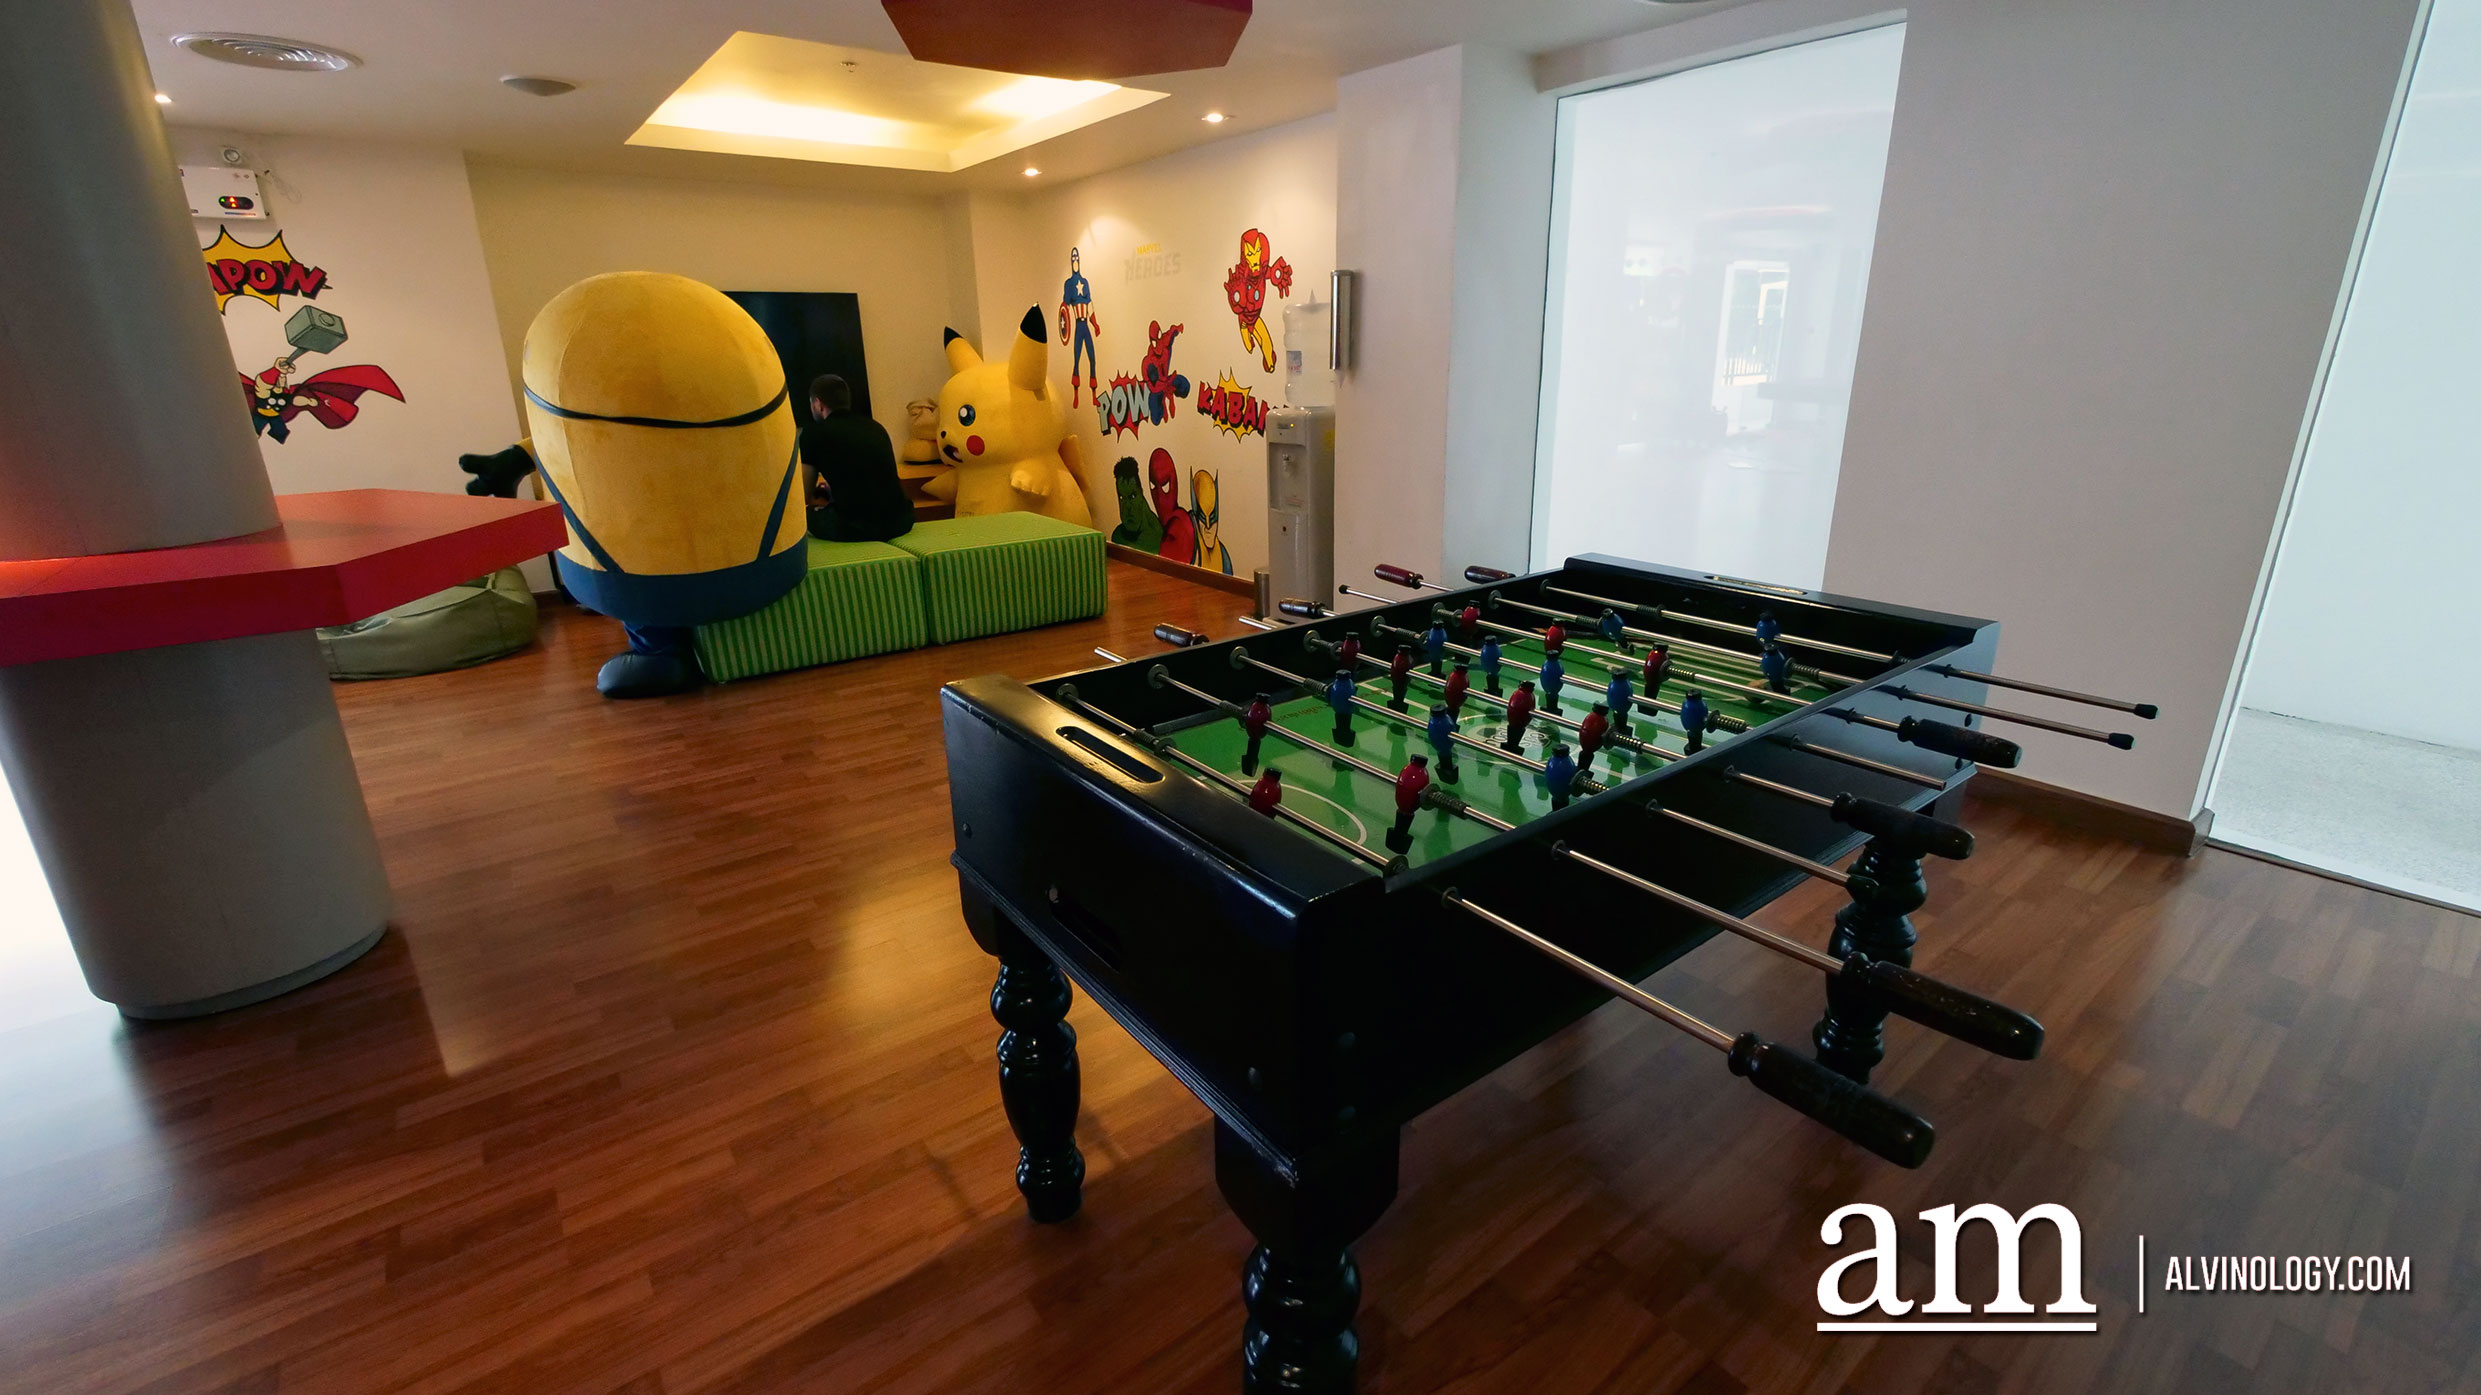 Free table football and Playstation games